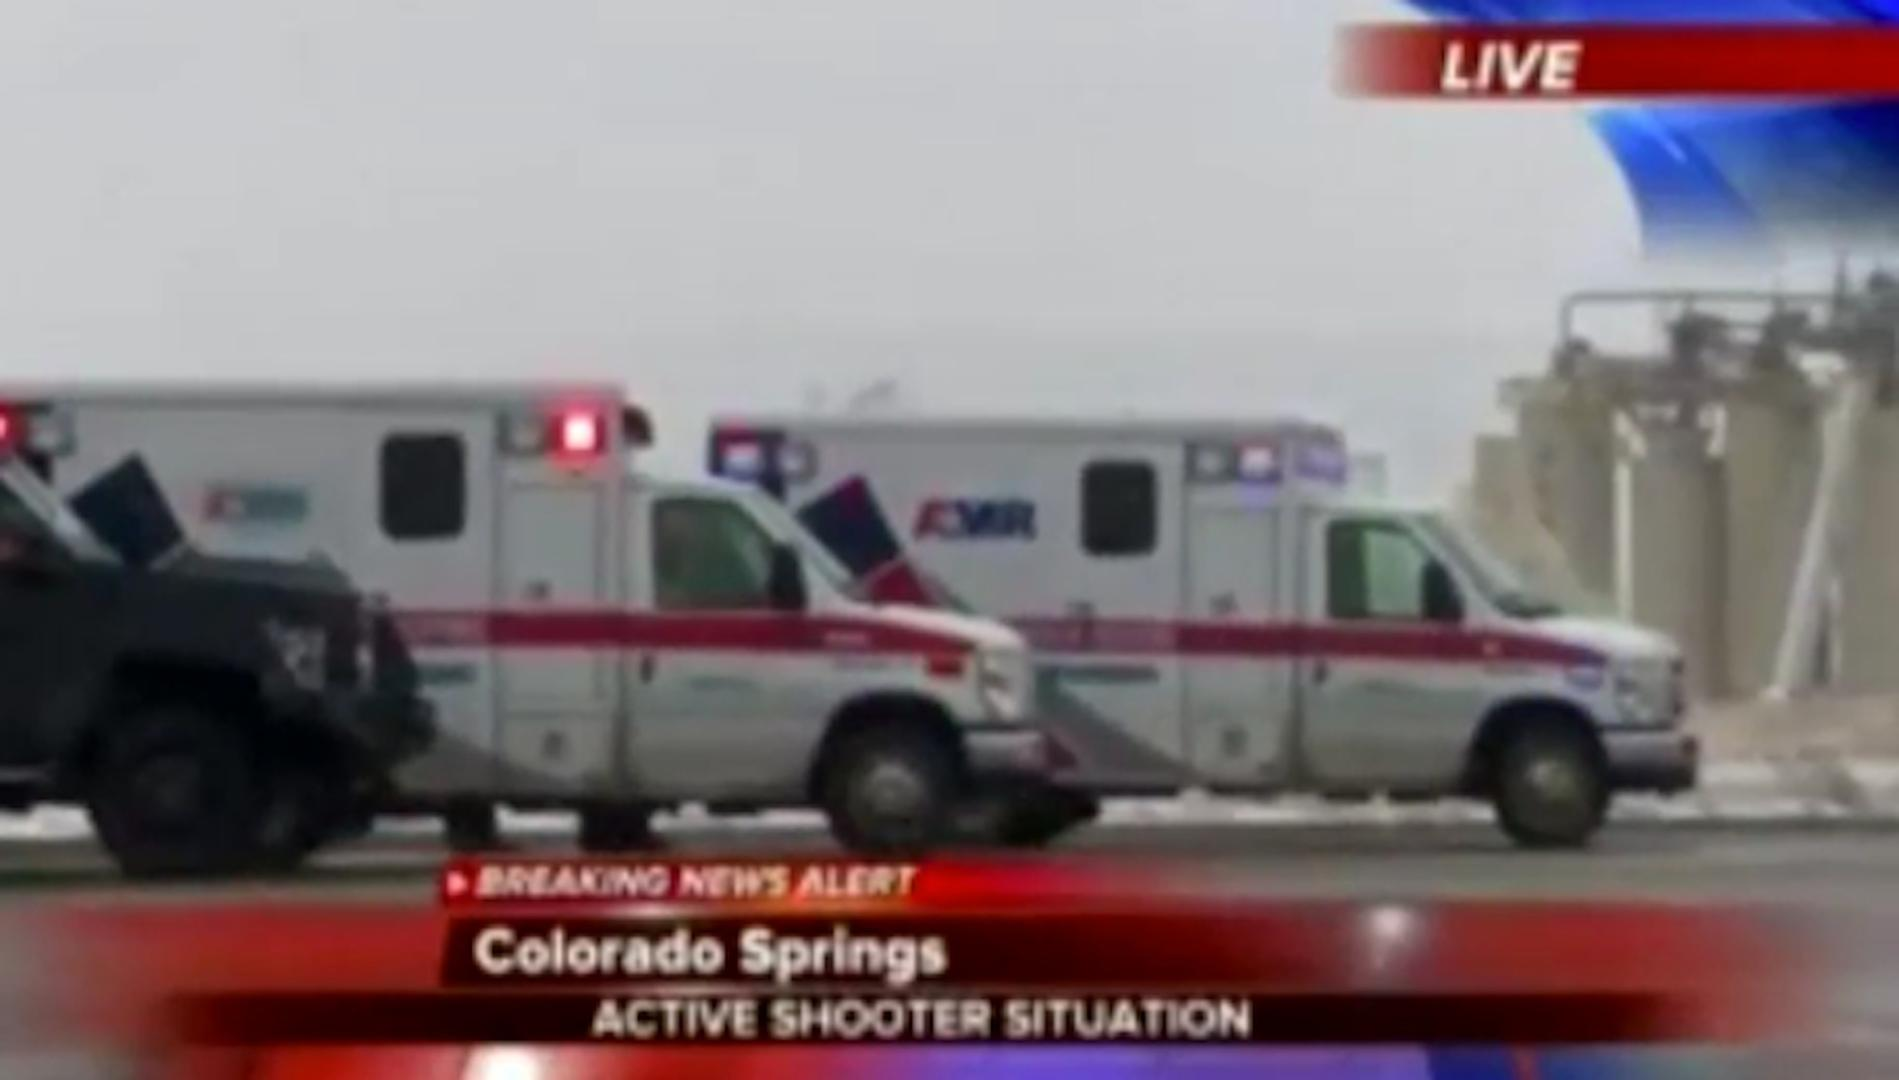 Officers injured in 'active shooter situation' at Planned Parenthood in  Colorado